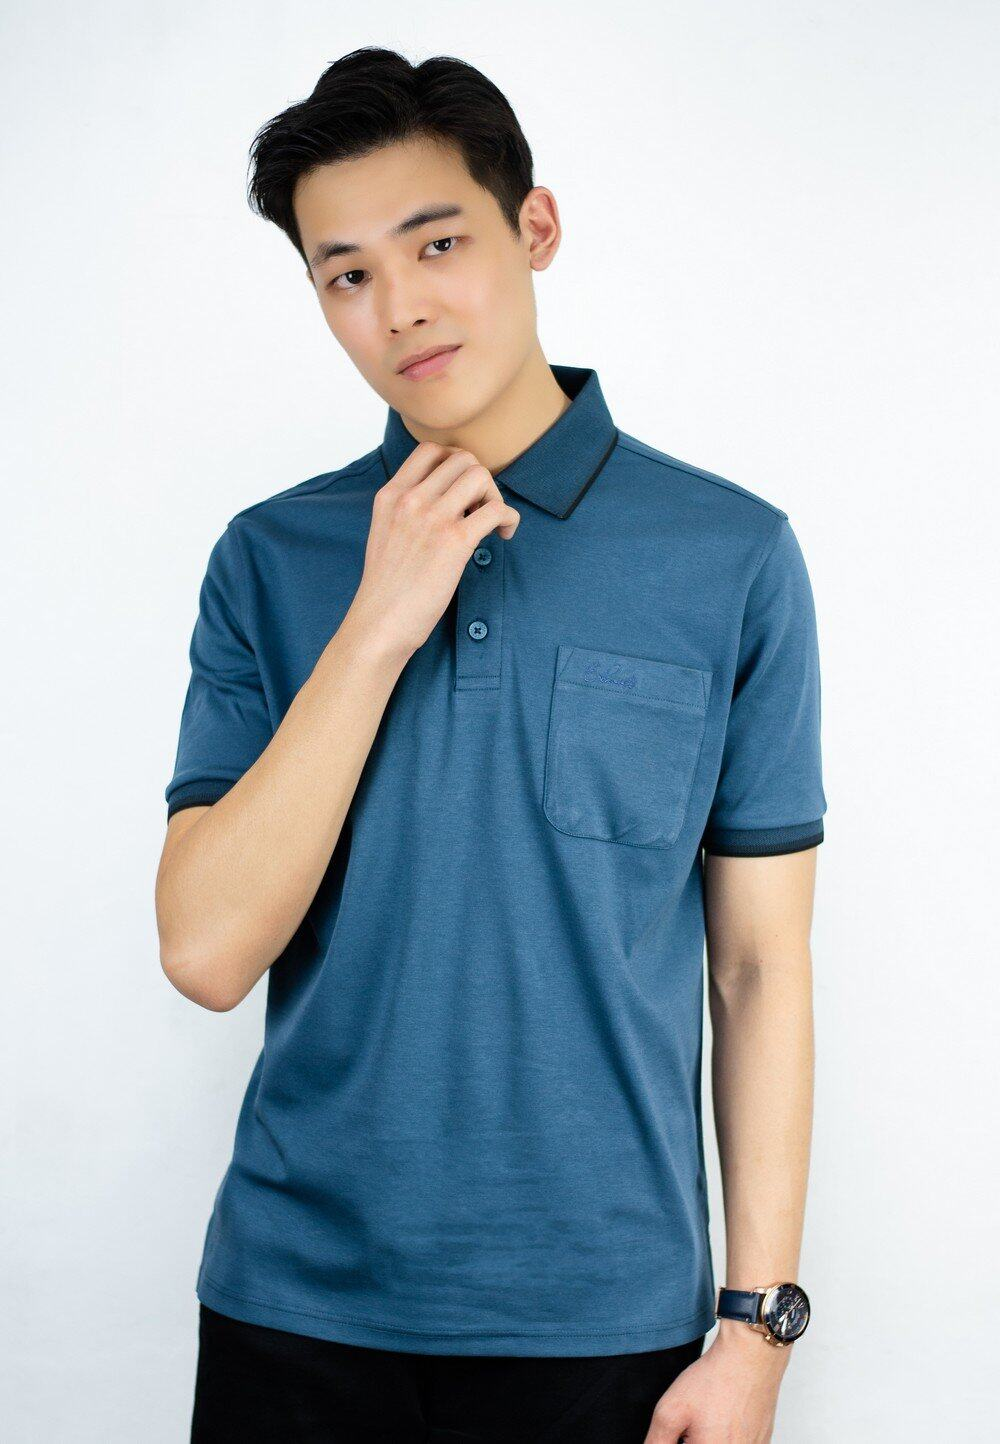 Polo Tee with Stripe Collar and Pocket with Embroidery 705